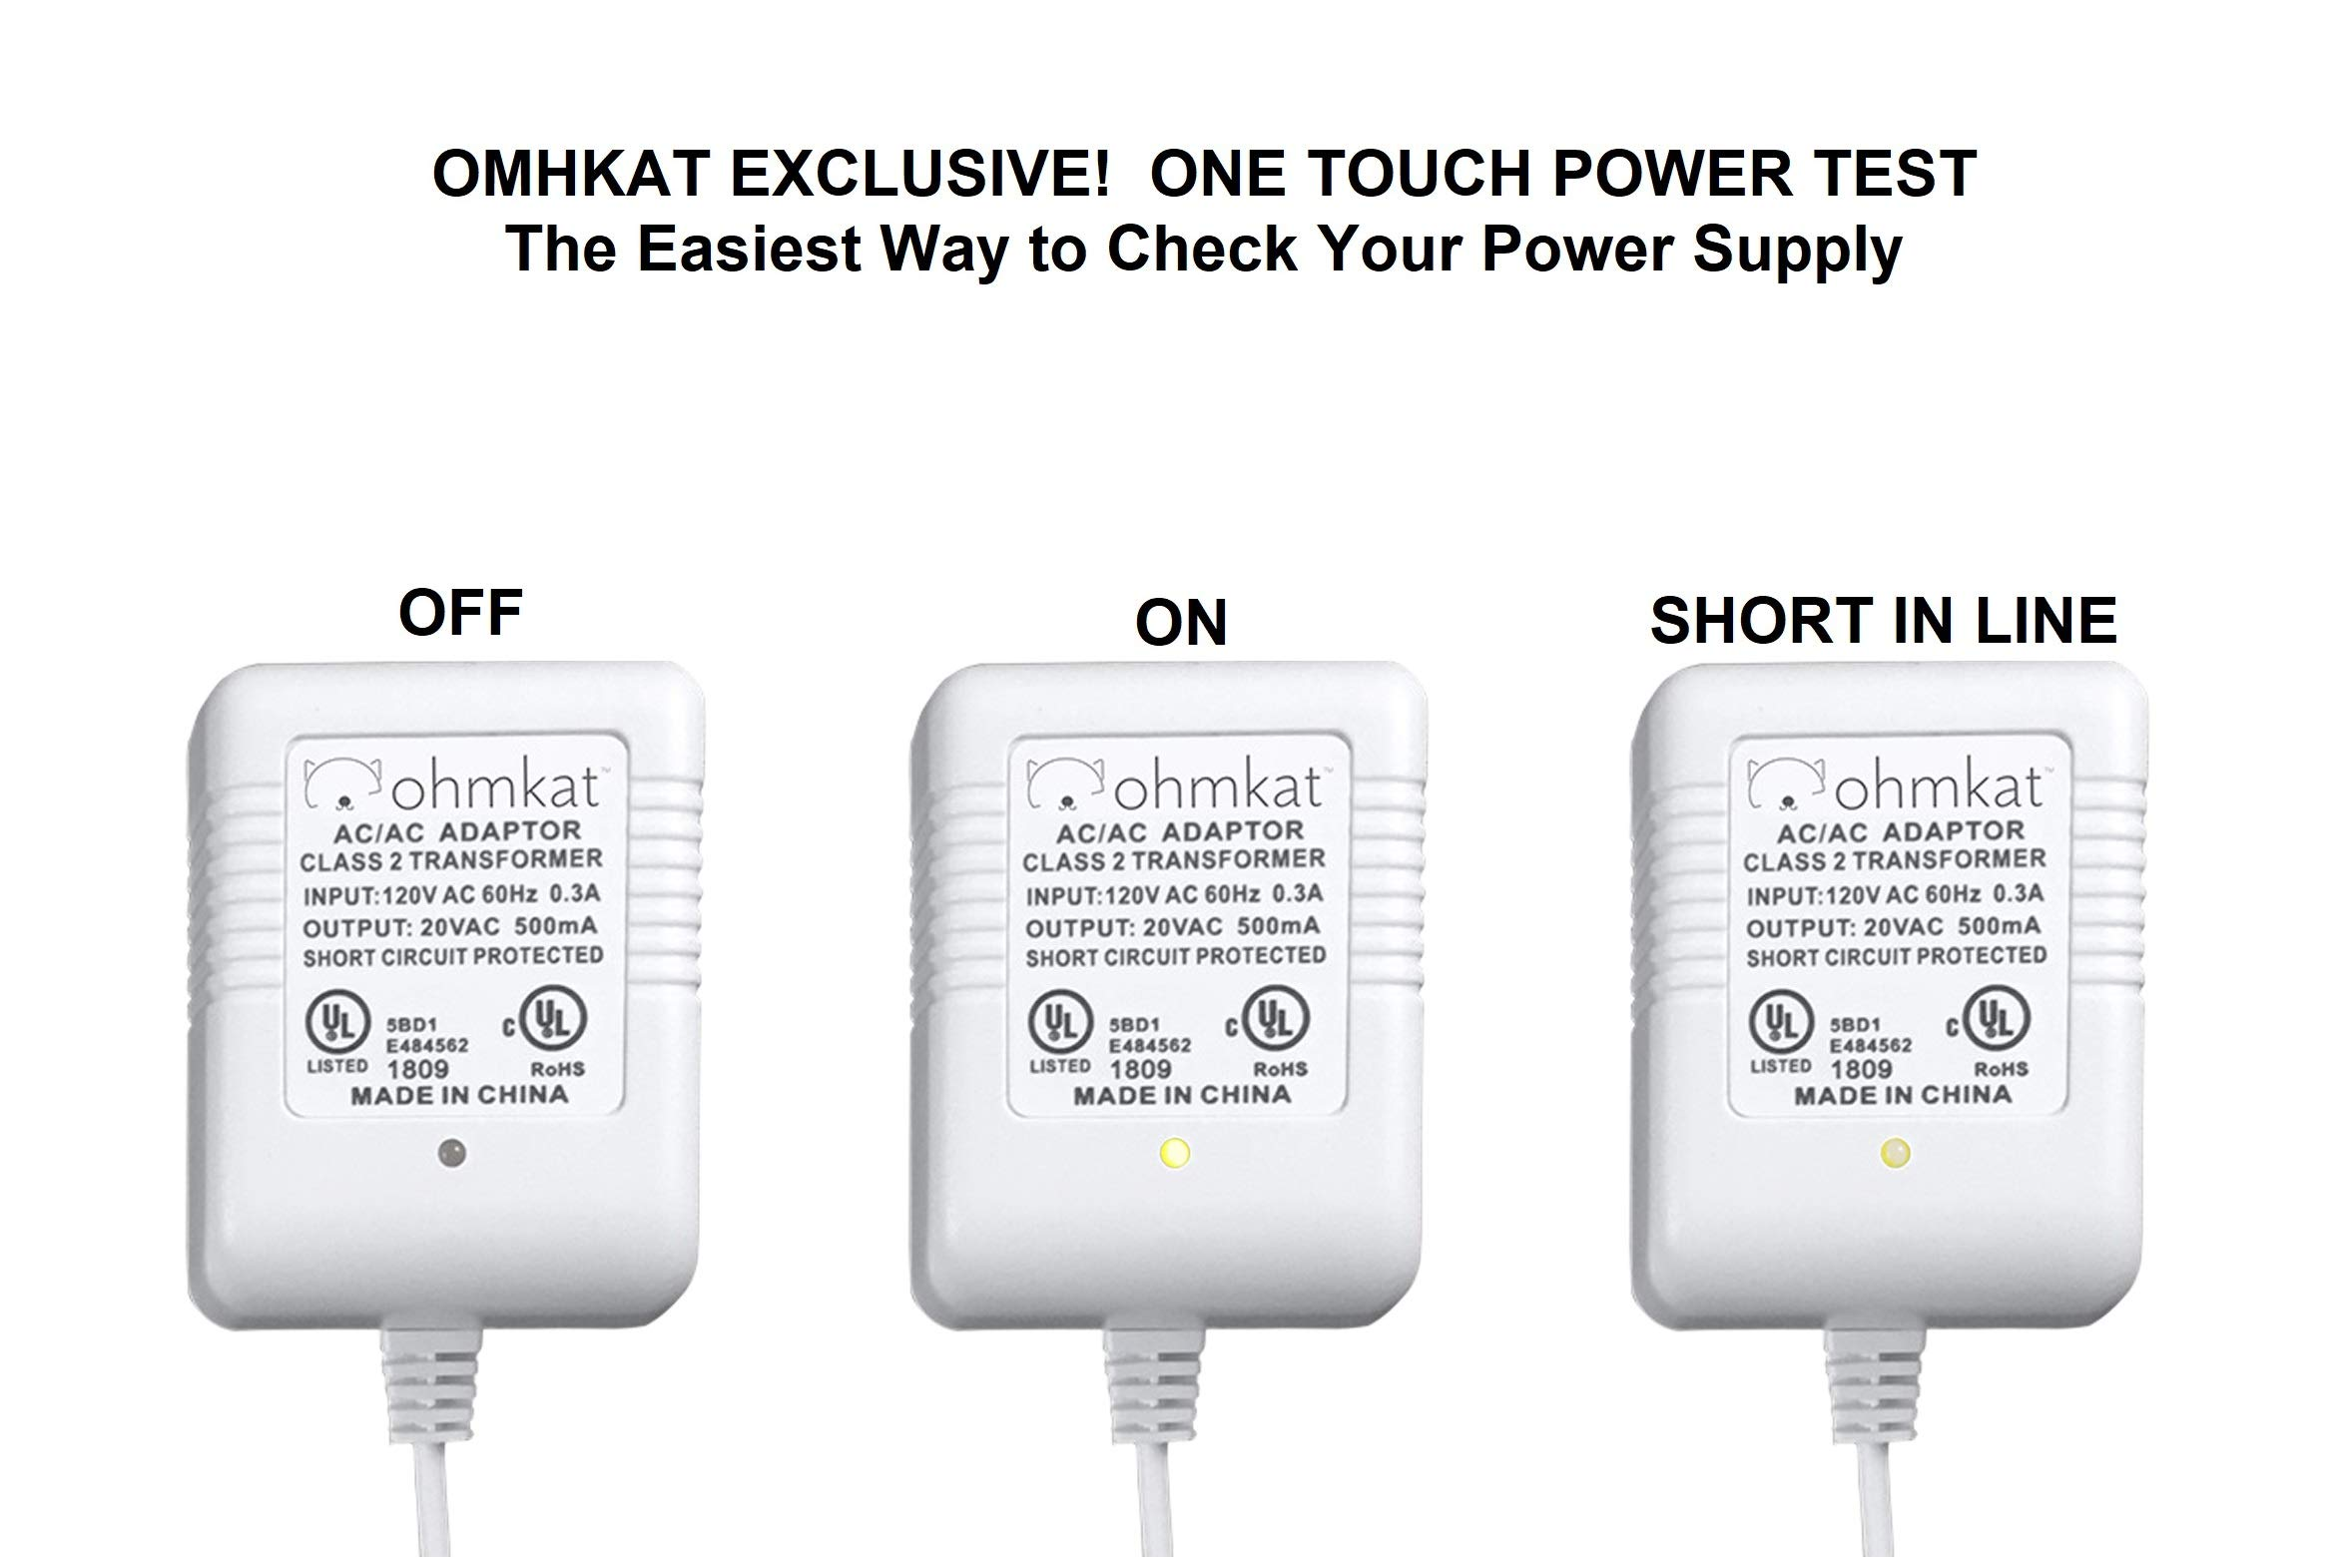 OhmKat Video Doorbell Power Supply- Compatible with Nest Hello - No Existing Wiring Required - Transformer, Adapter, Power Kit & Supply All In One (White) by OhmKat (Image #4)